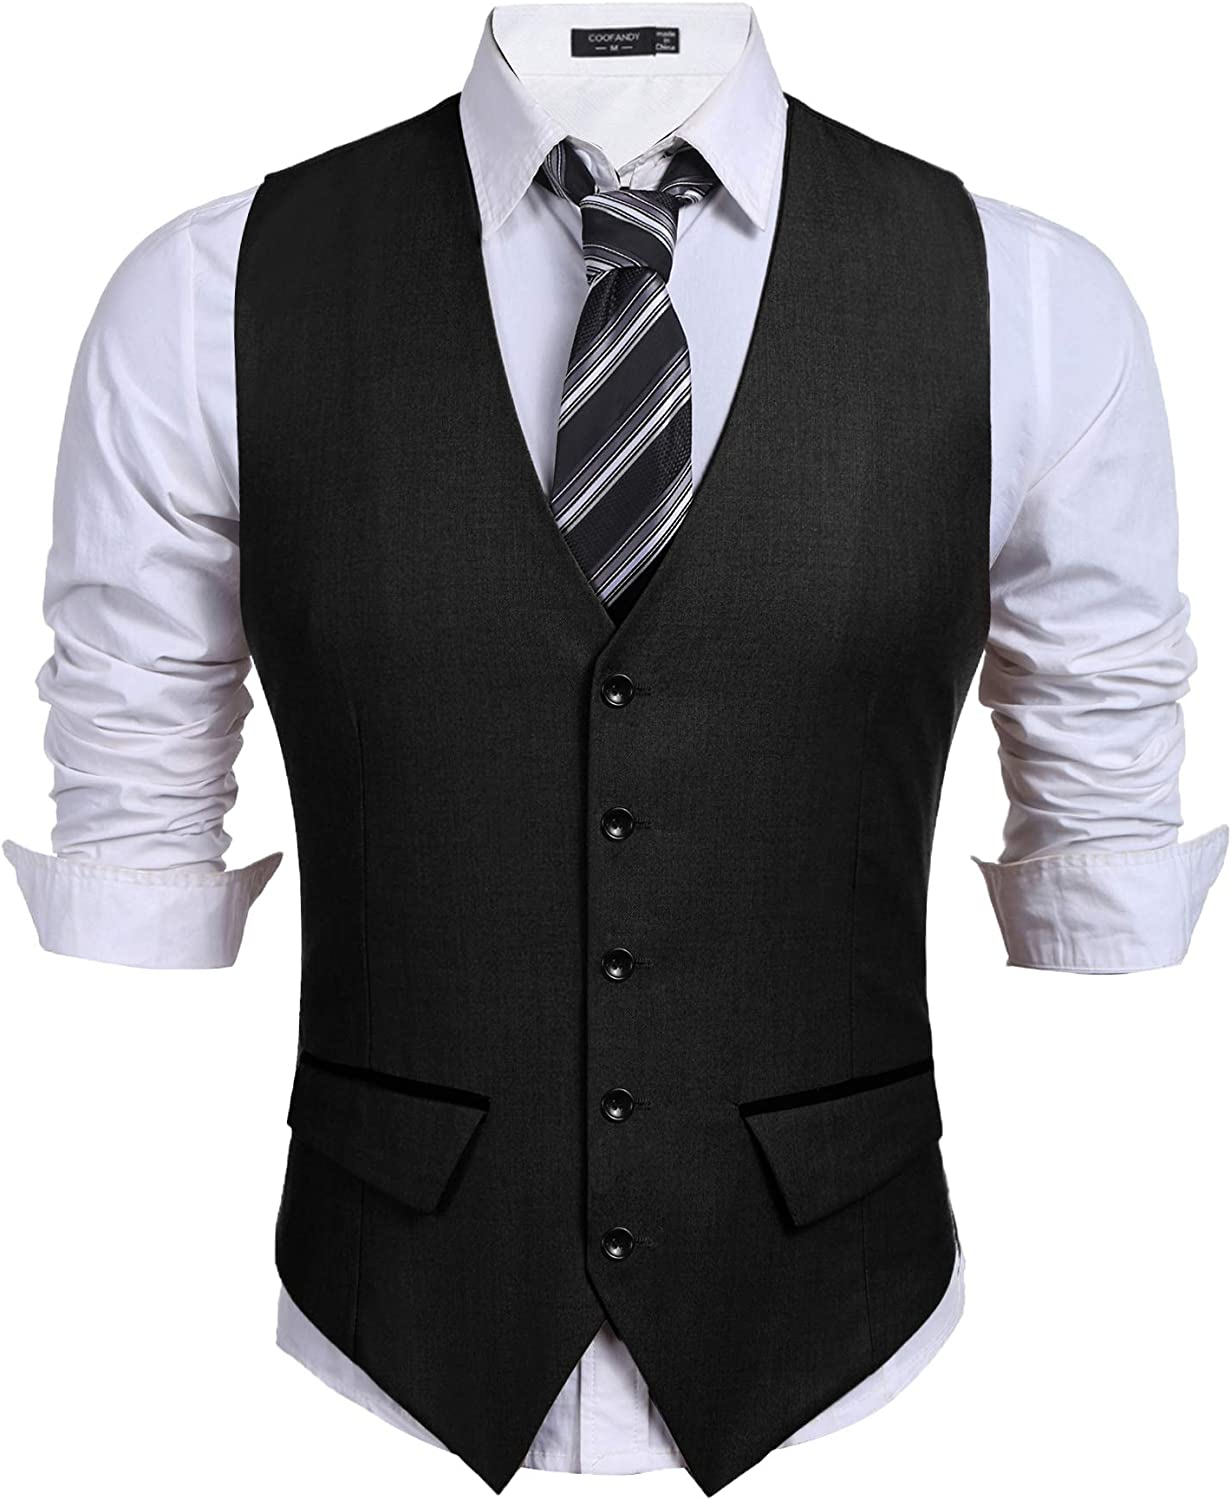 COOFANDY Men's Business Suit Vest Slim Fit Dress Vest Wedding Waistcoat